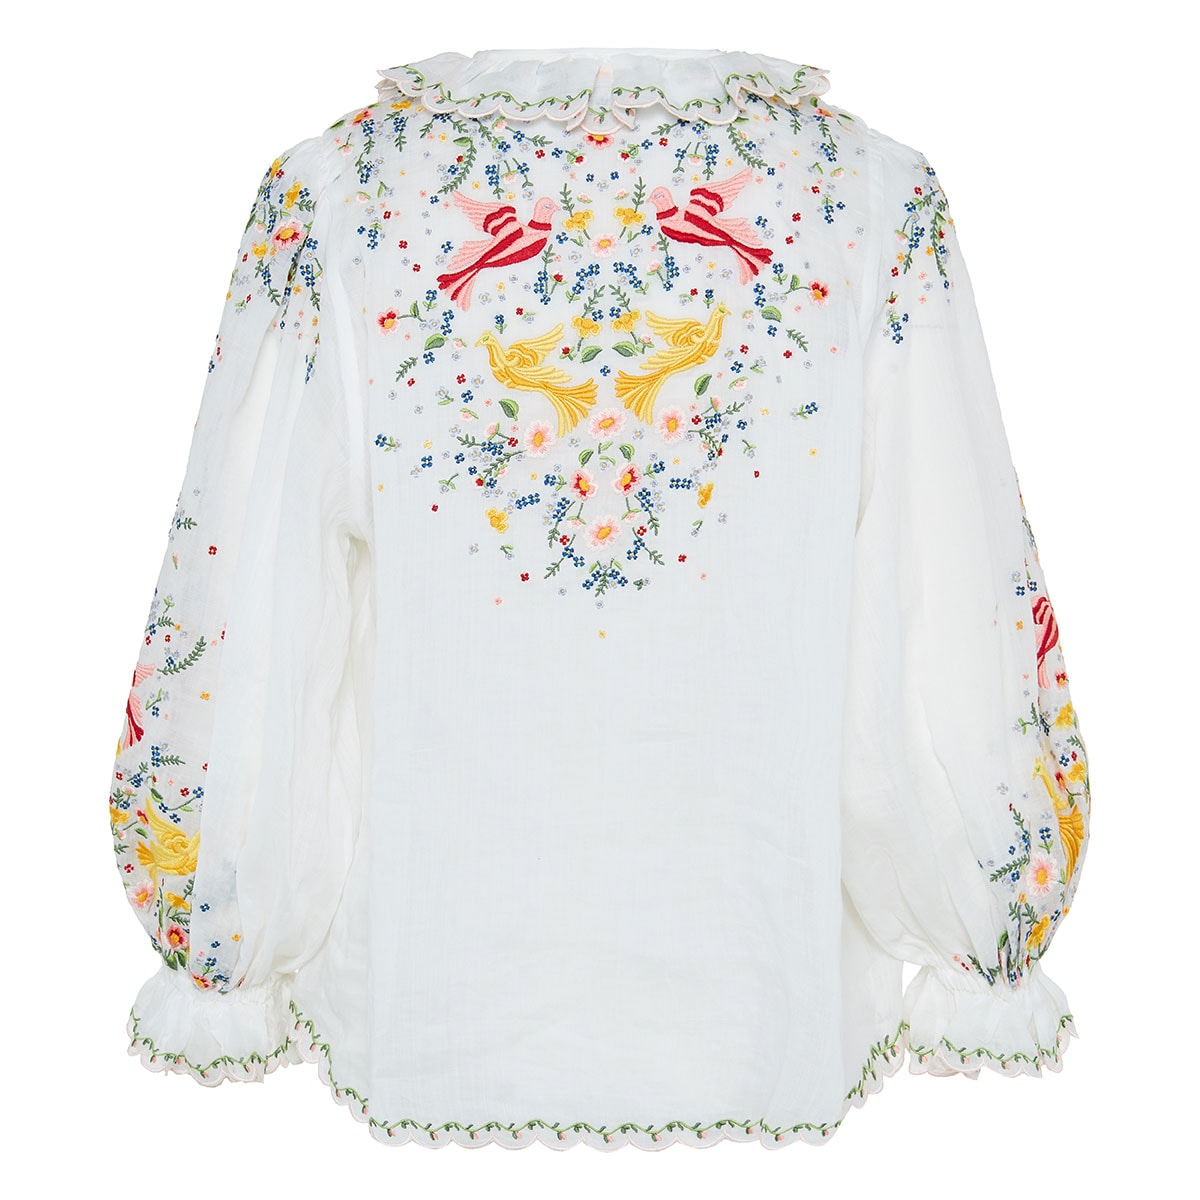 Carnaby embroidered blouse